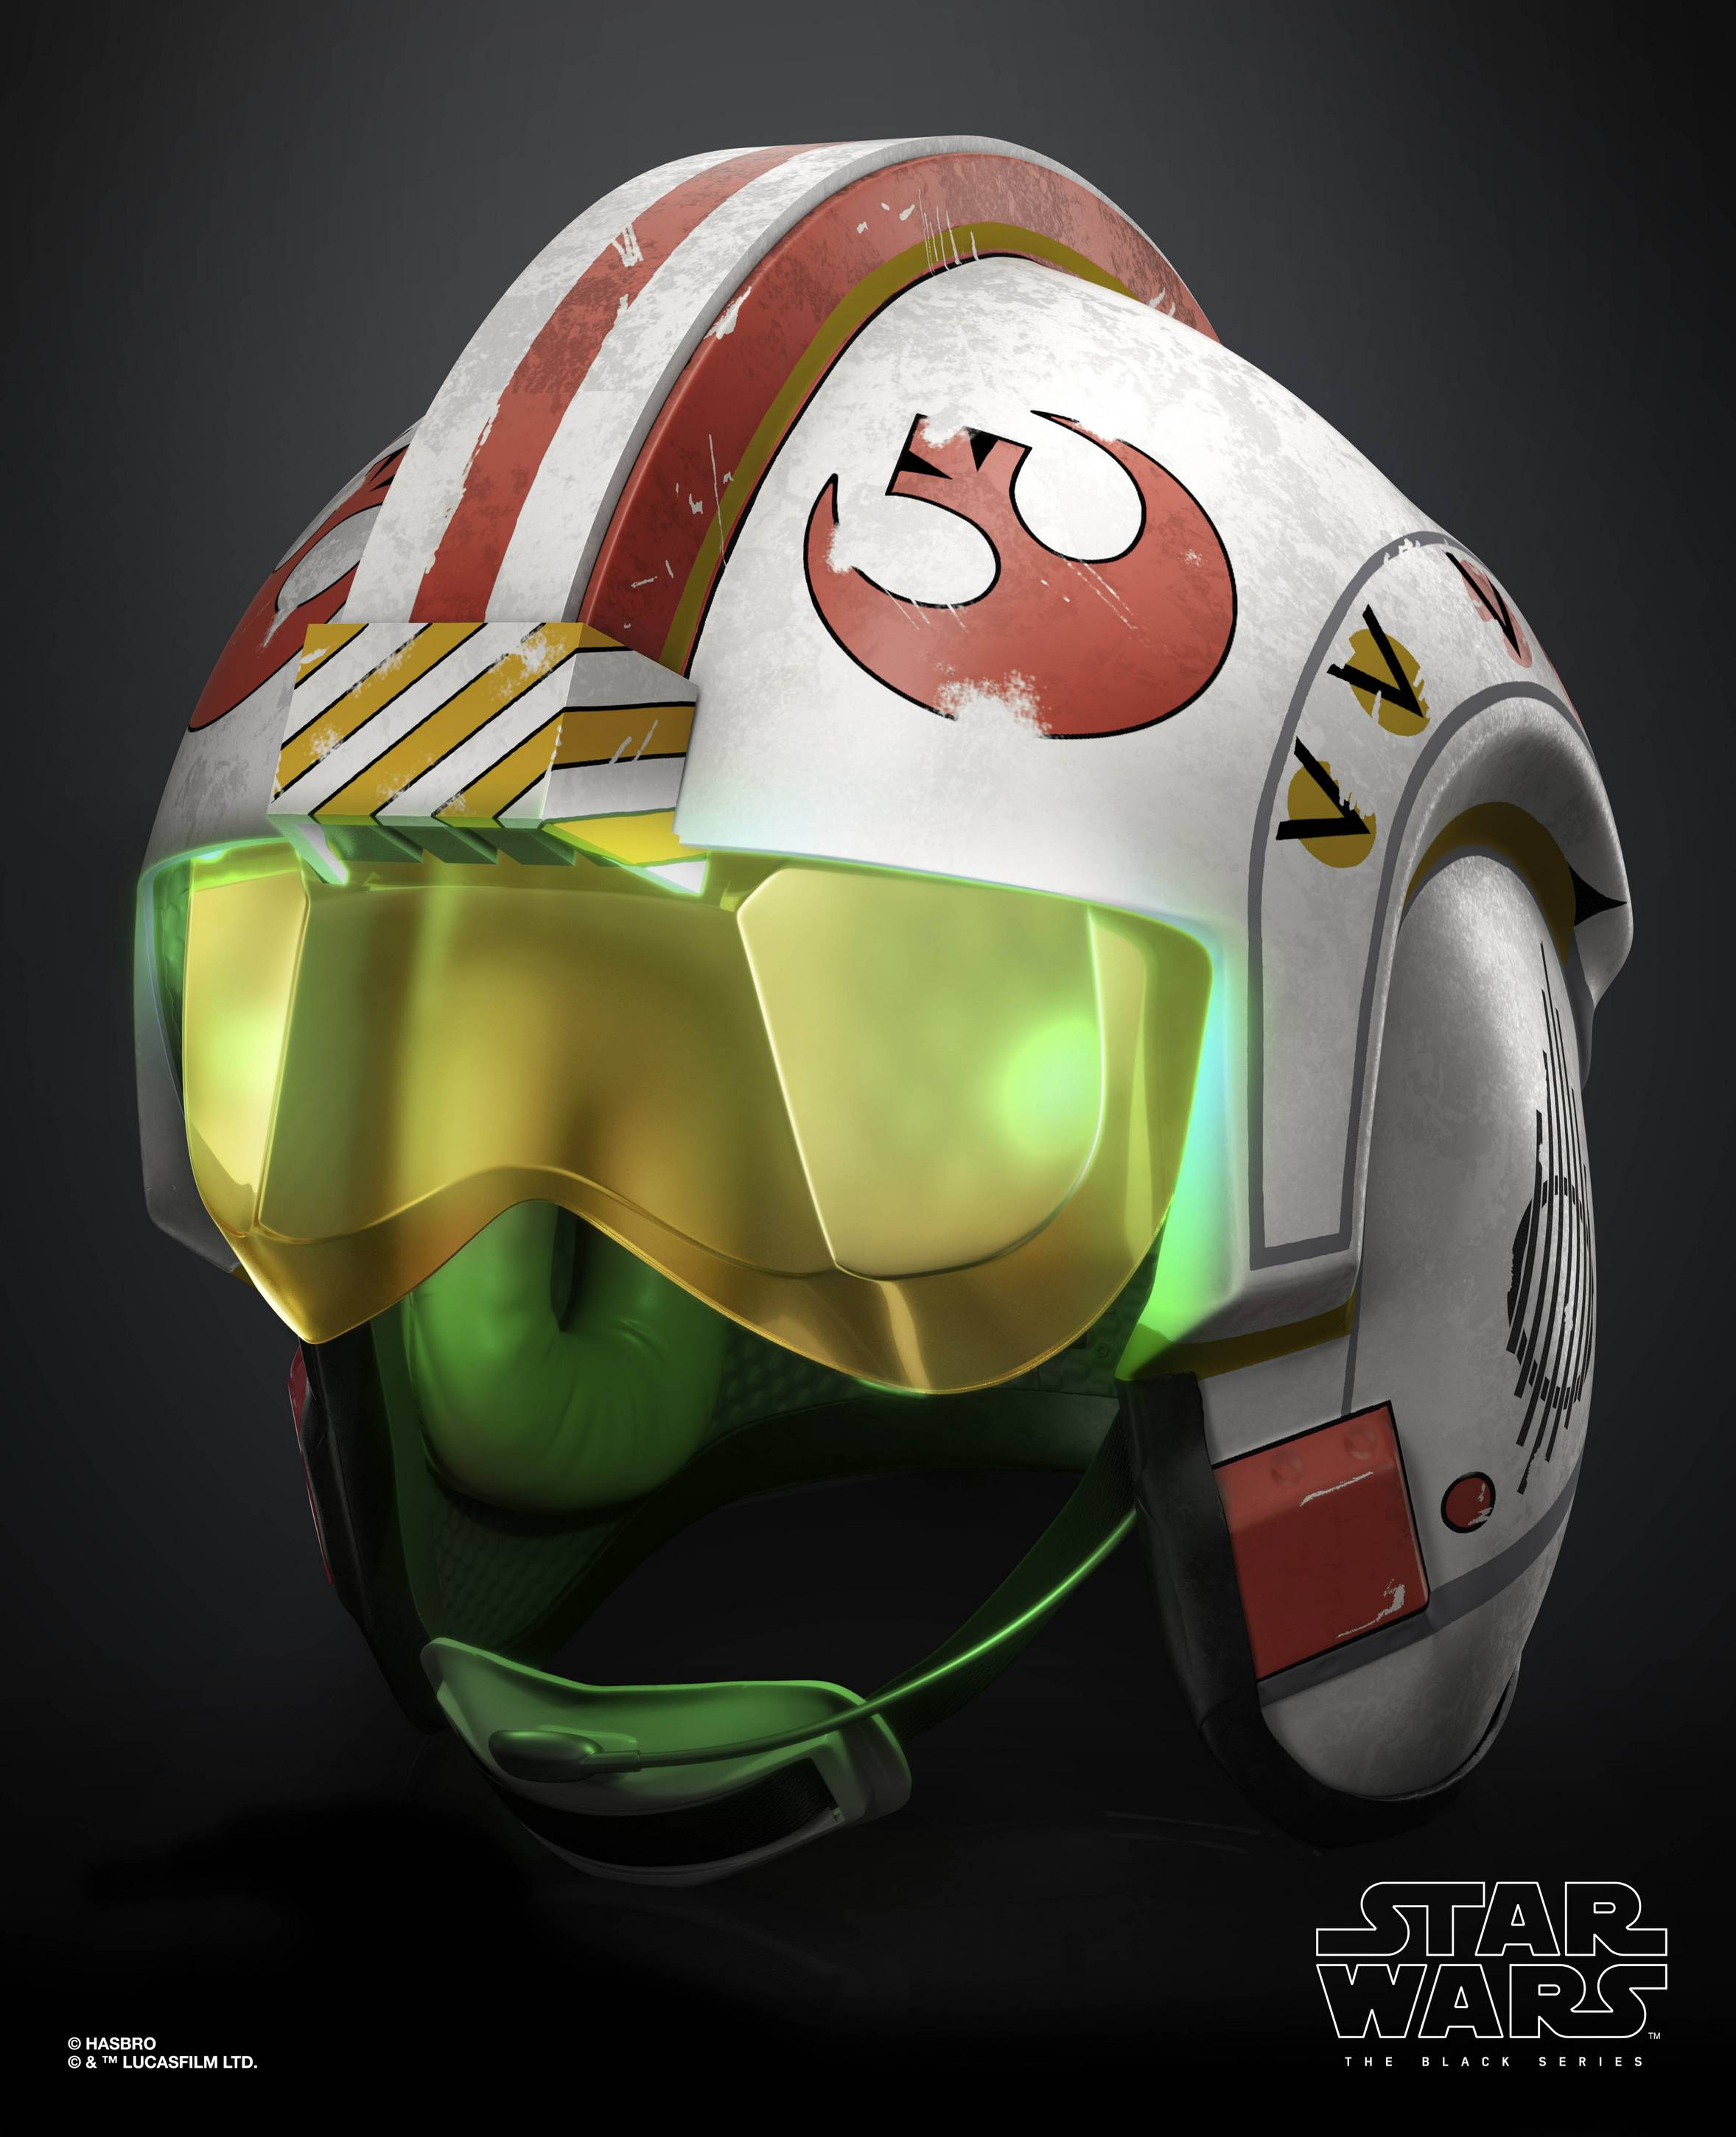 STAR-WARS-THE-BLACK-SERIES-LUKE-SKYWALKER-BATTLE-SIMULATION-ELECTRONIC-HELMET-oop-12.jpg